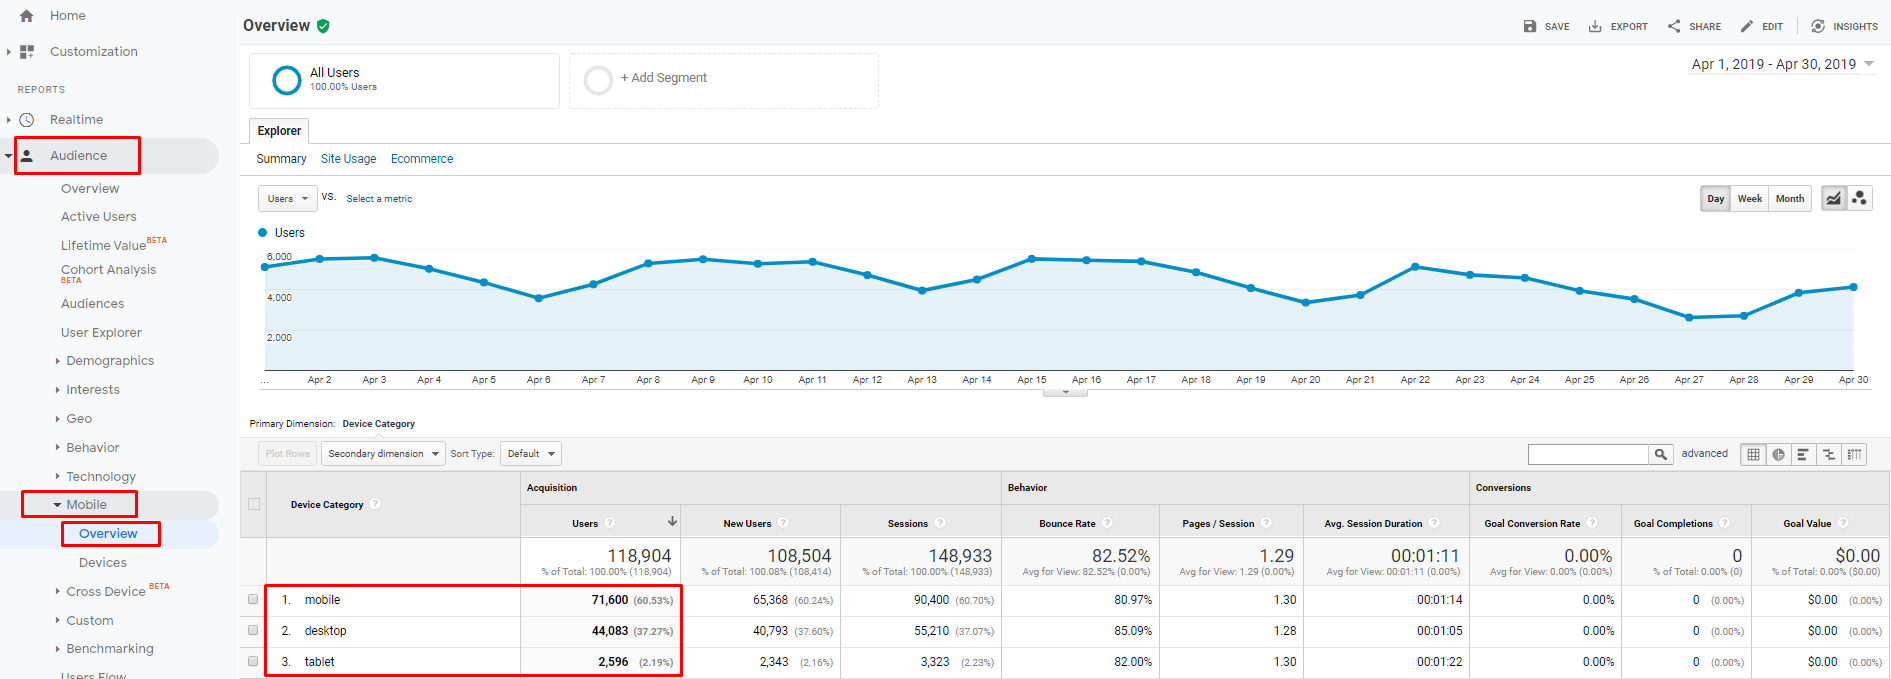 Mobile devices in Google Analytics